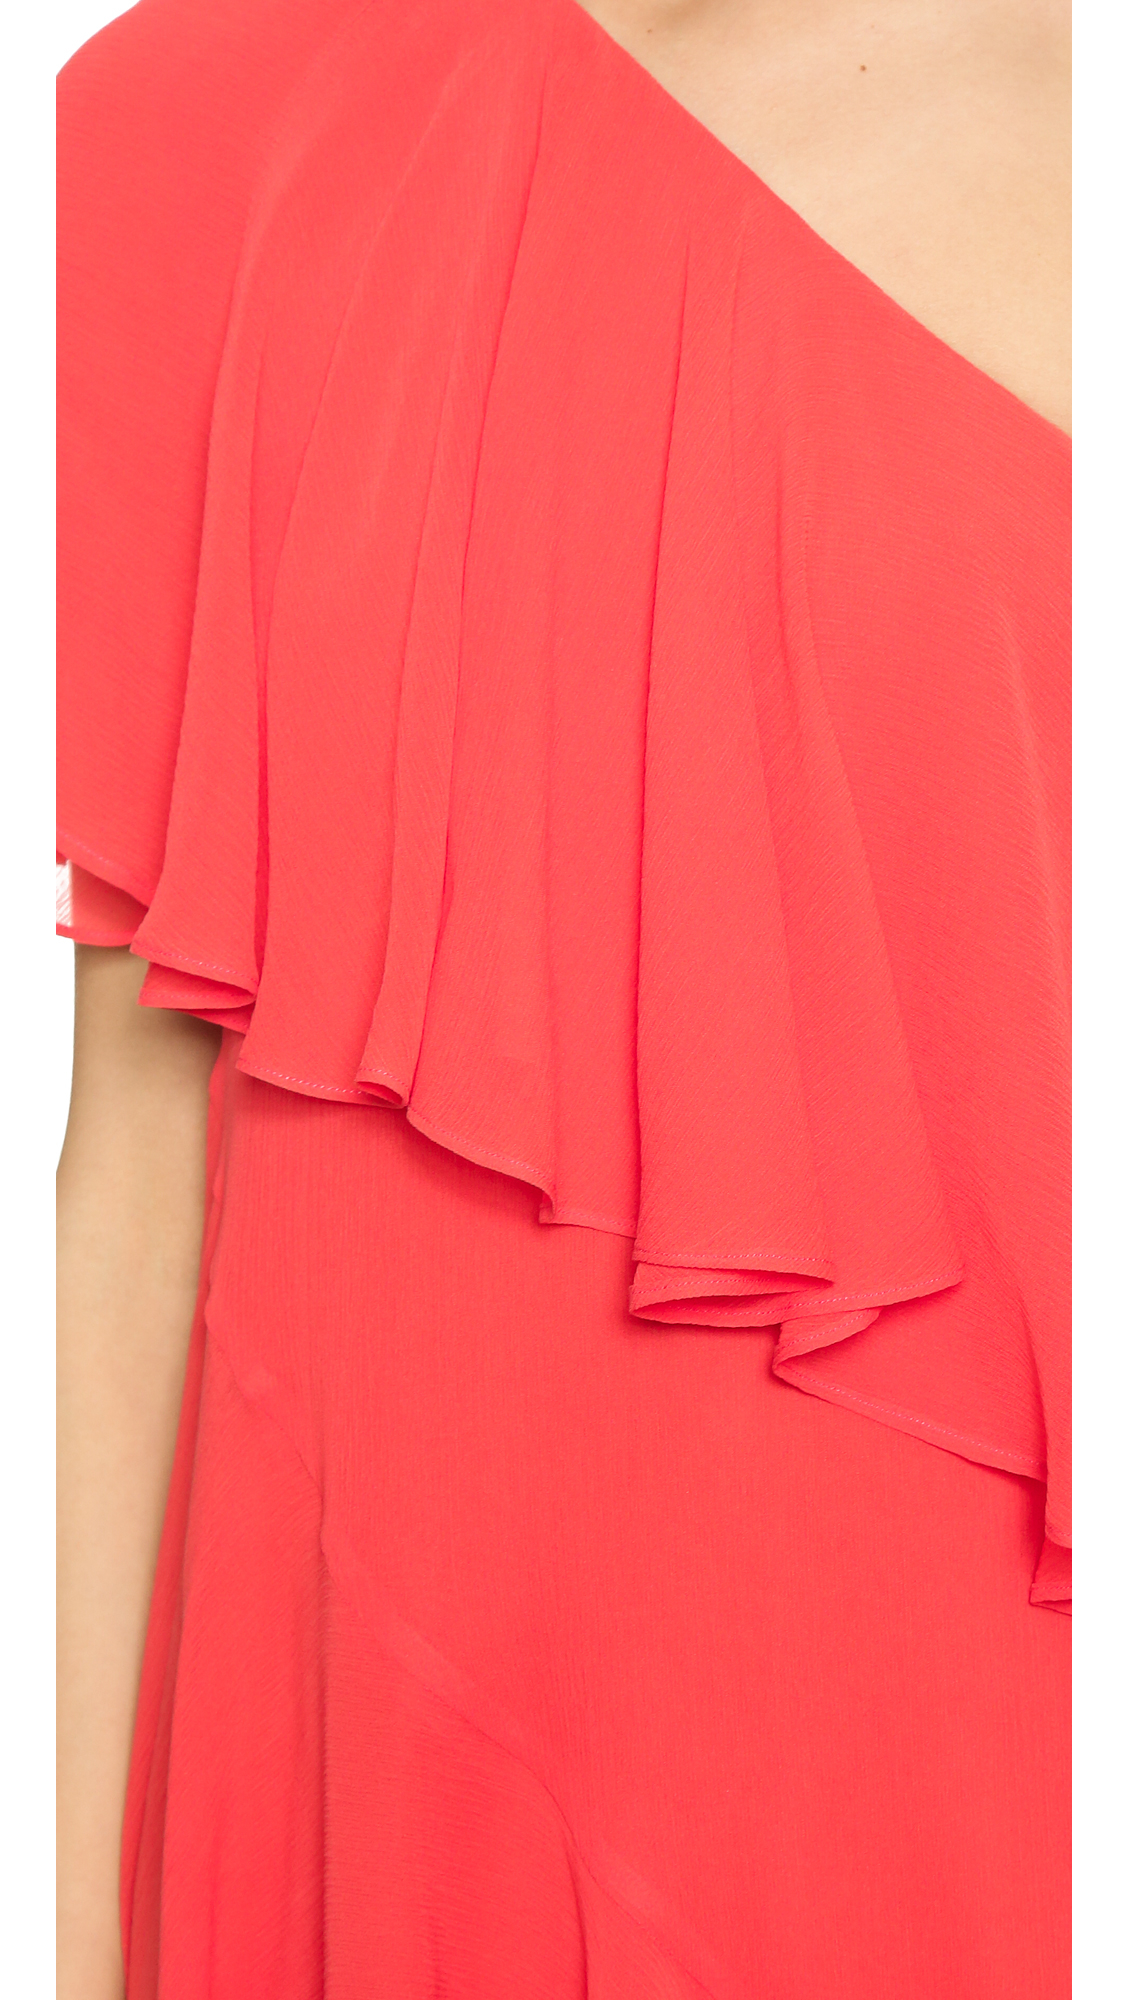 Brunelle cocktail dress